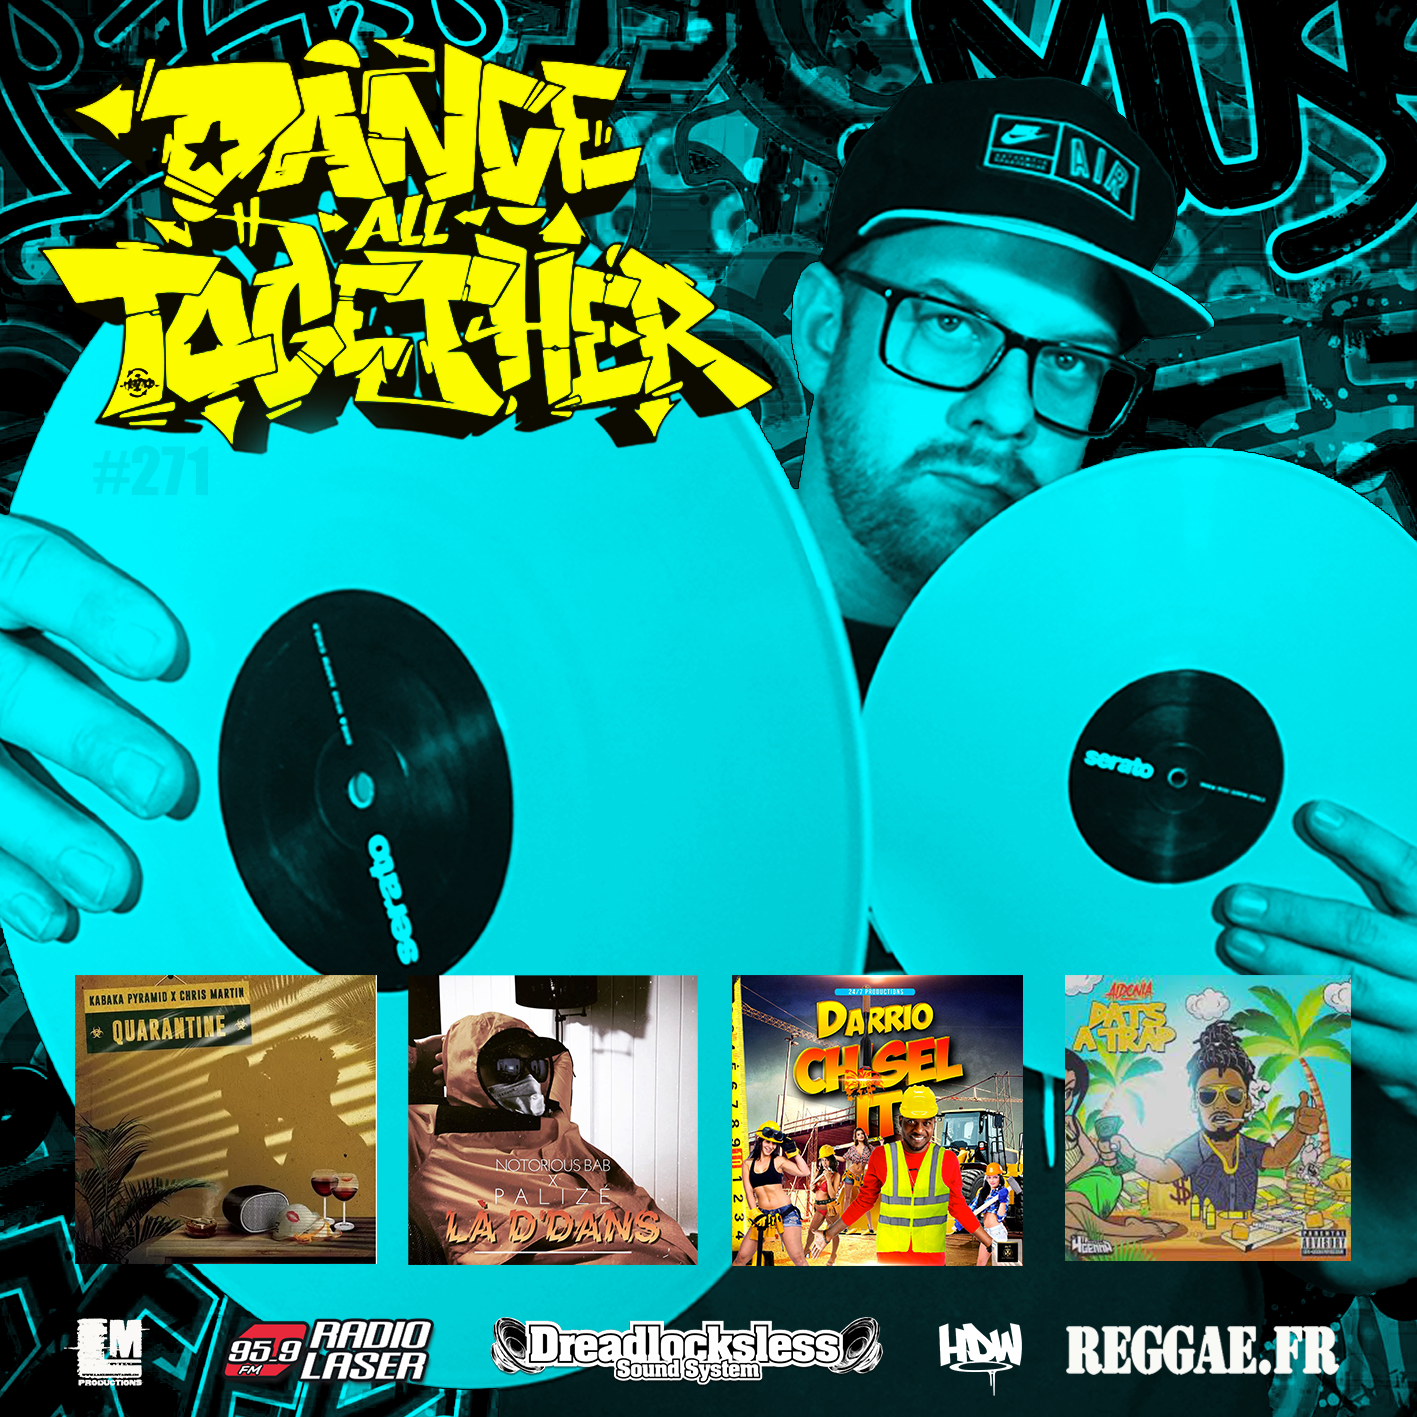 Dance All Together #271 Reggae Selection 06.04.2020